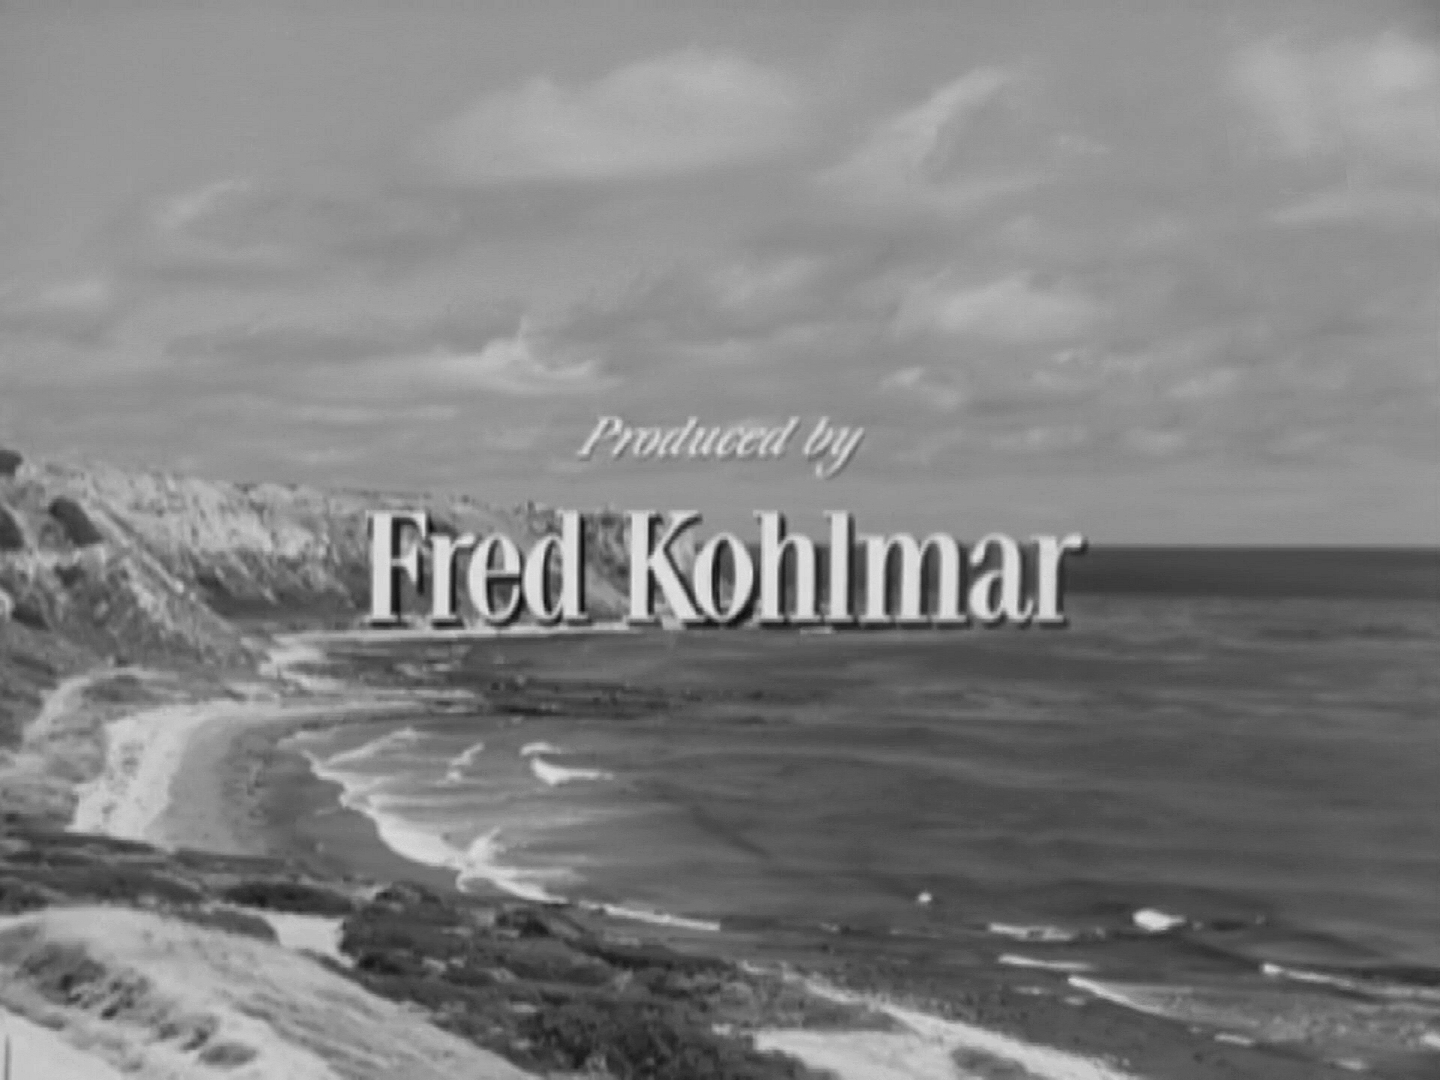 Main title from The Ghost and Mrs Muir (1947) (8). Produced by Fred Kohlmar